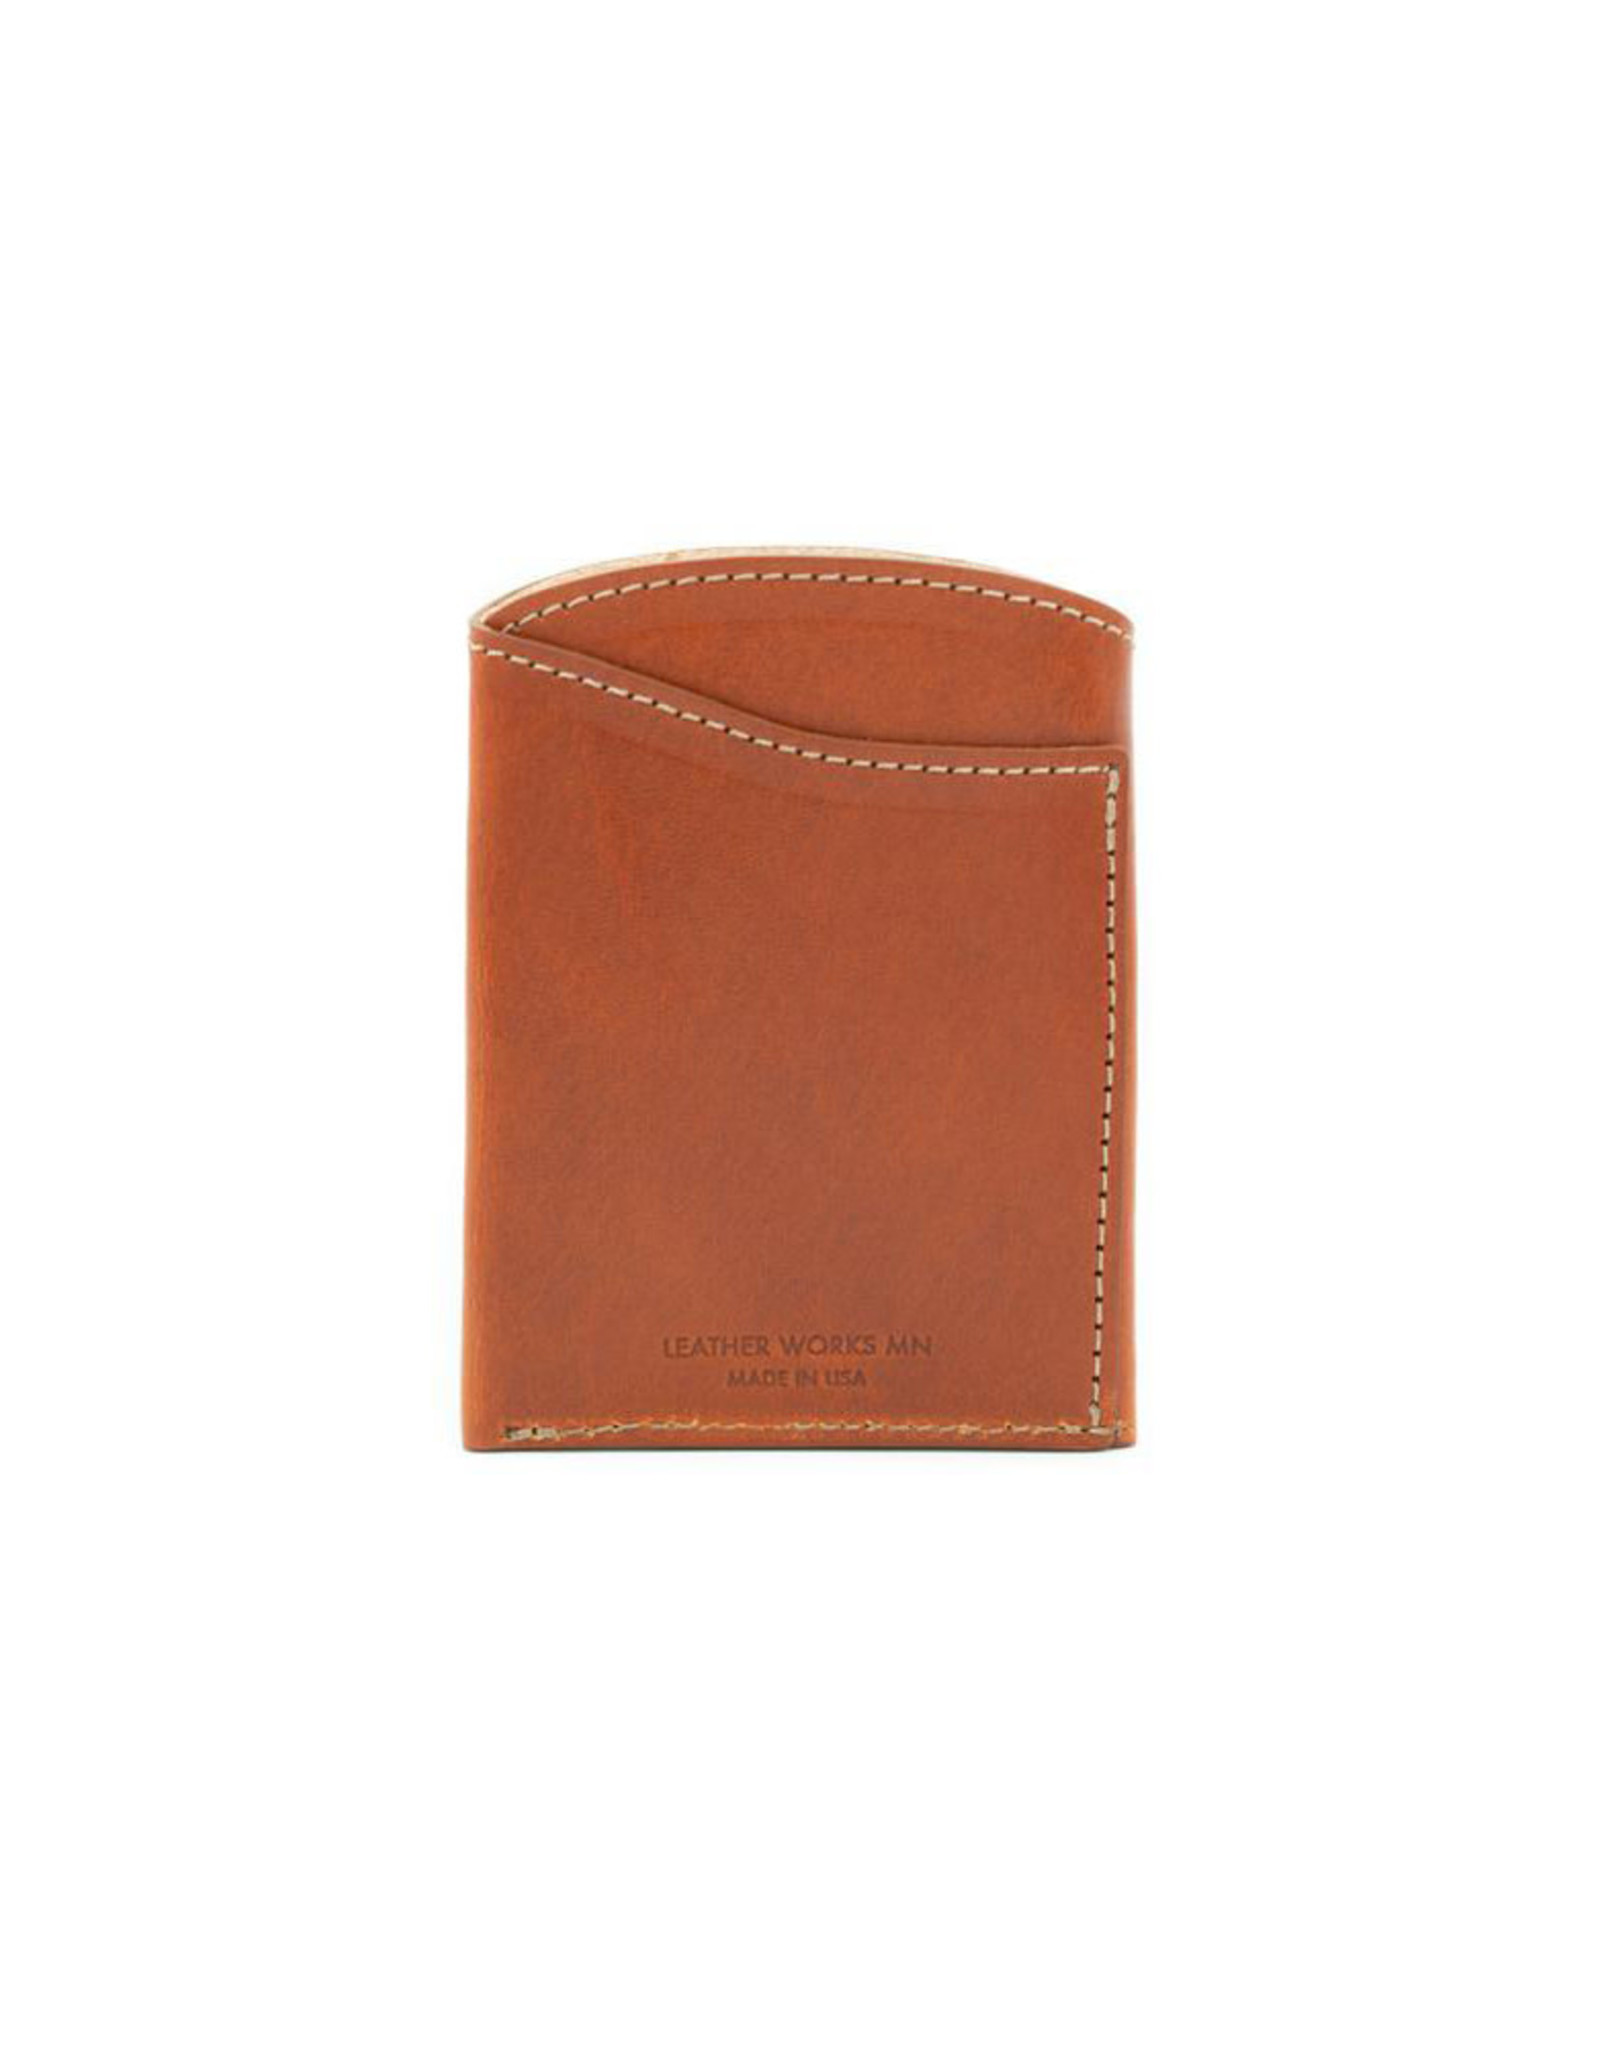 Leather Works Minnesota Font Pocket Flap Wallet